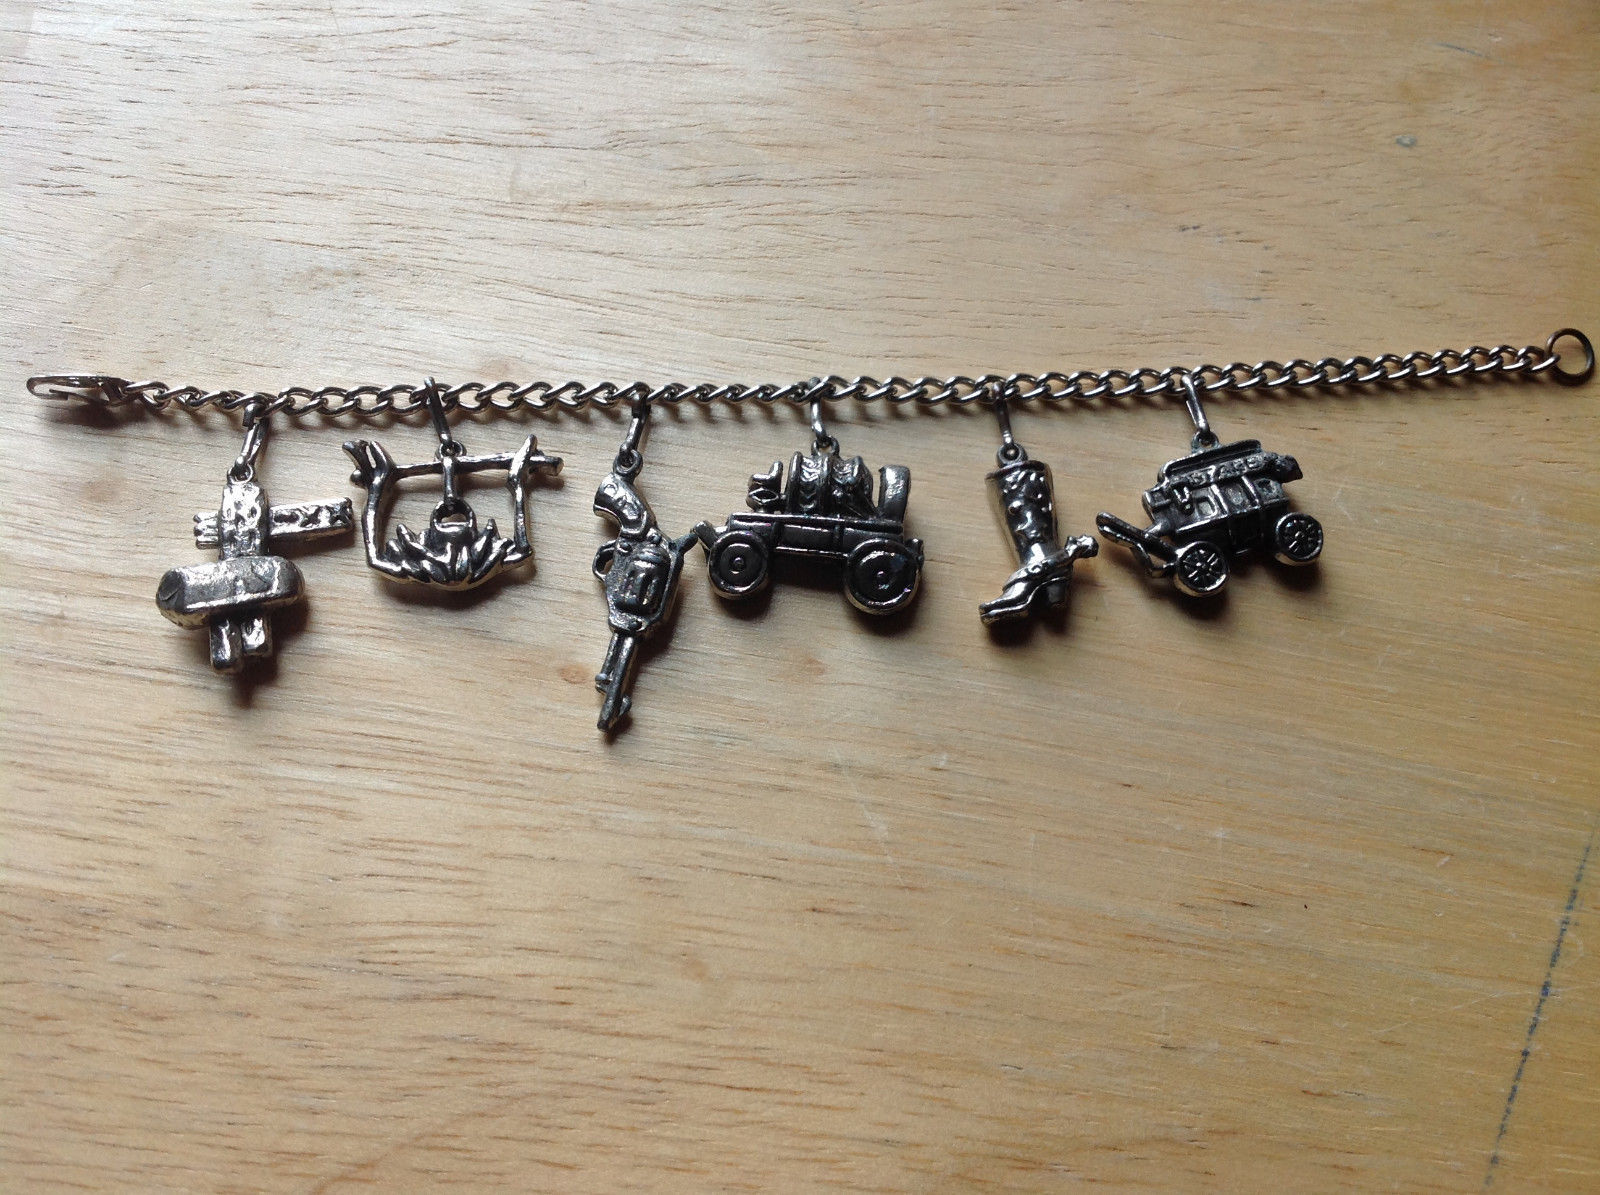 Old West Themed Charm Silver Bracelet Pressure Moving Closure Charms List Below